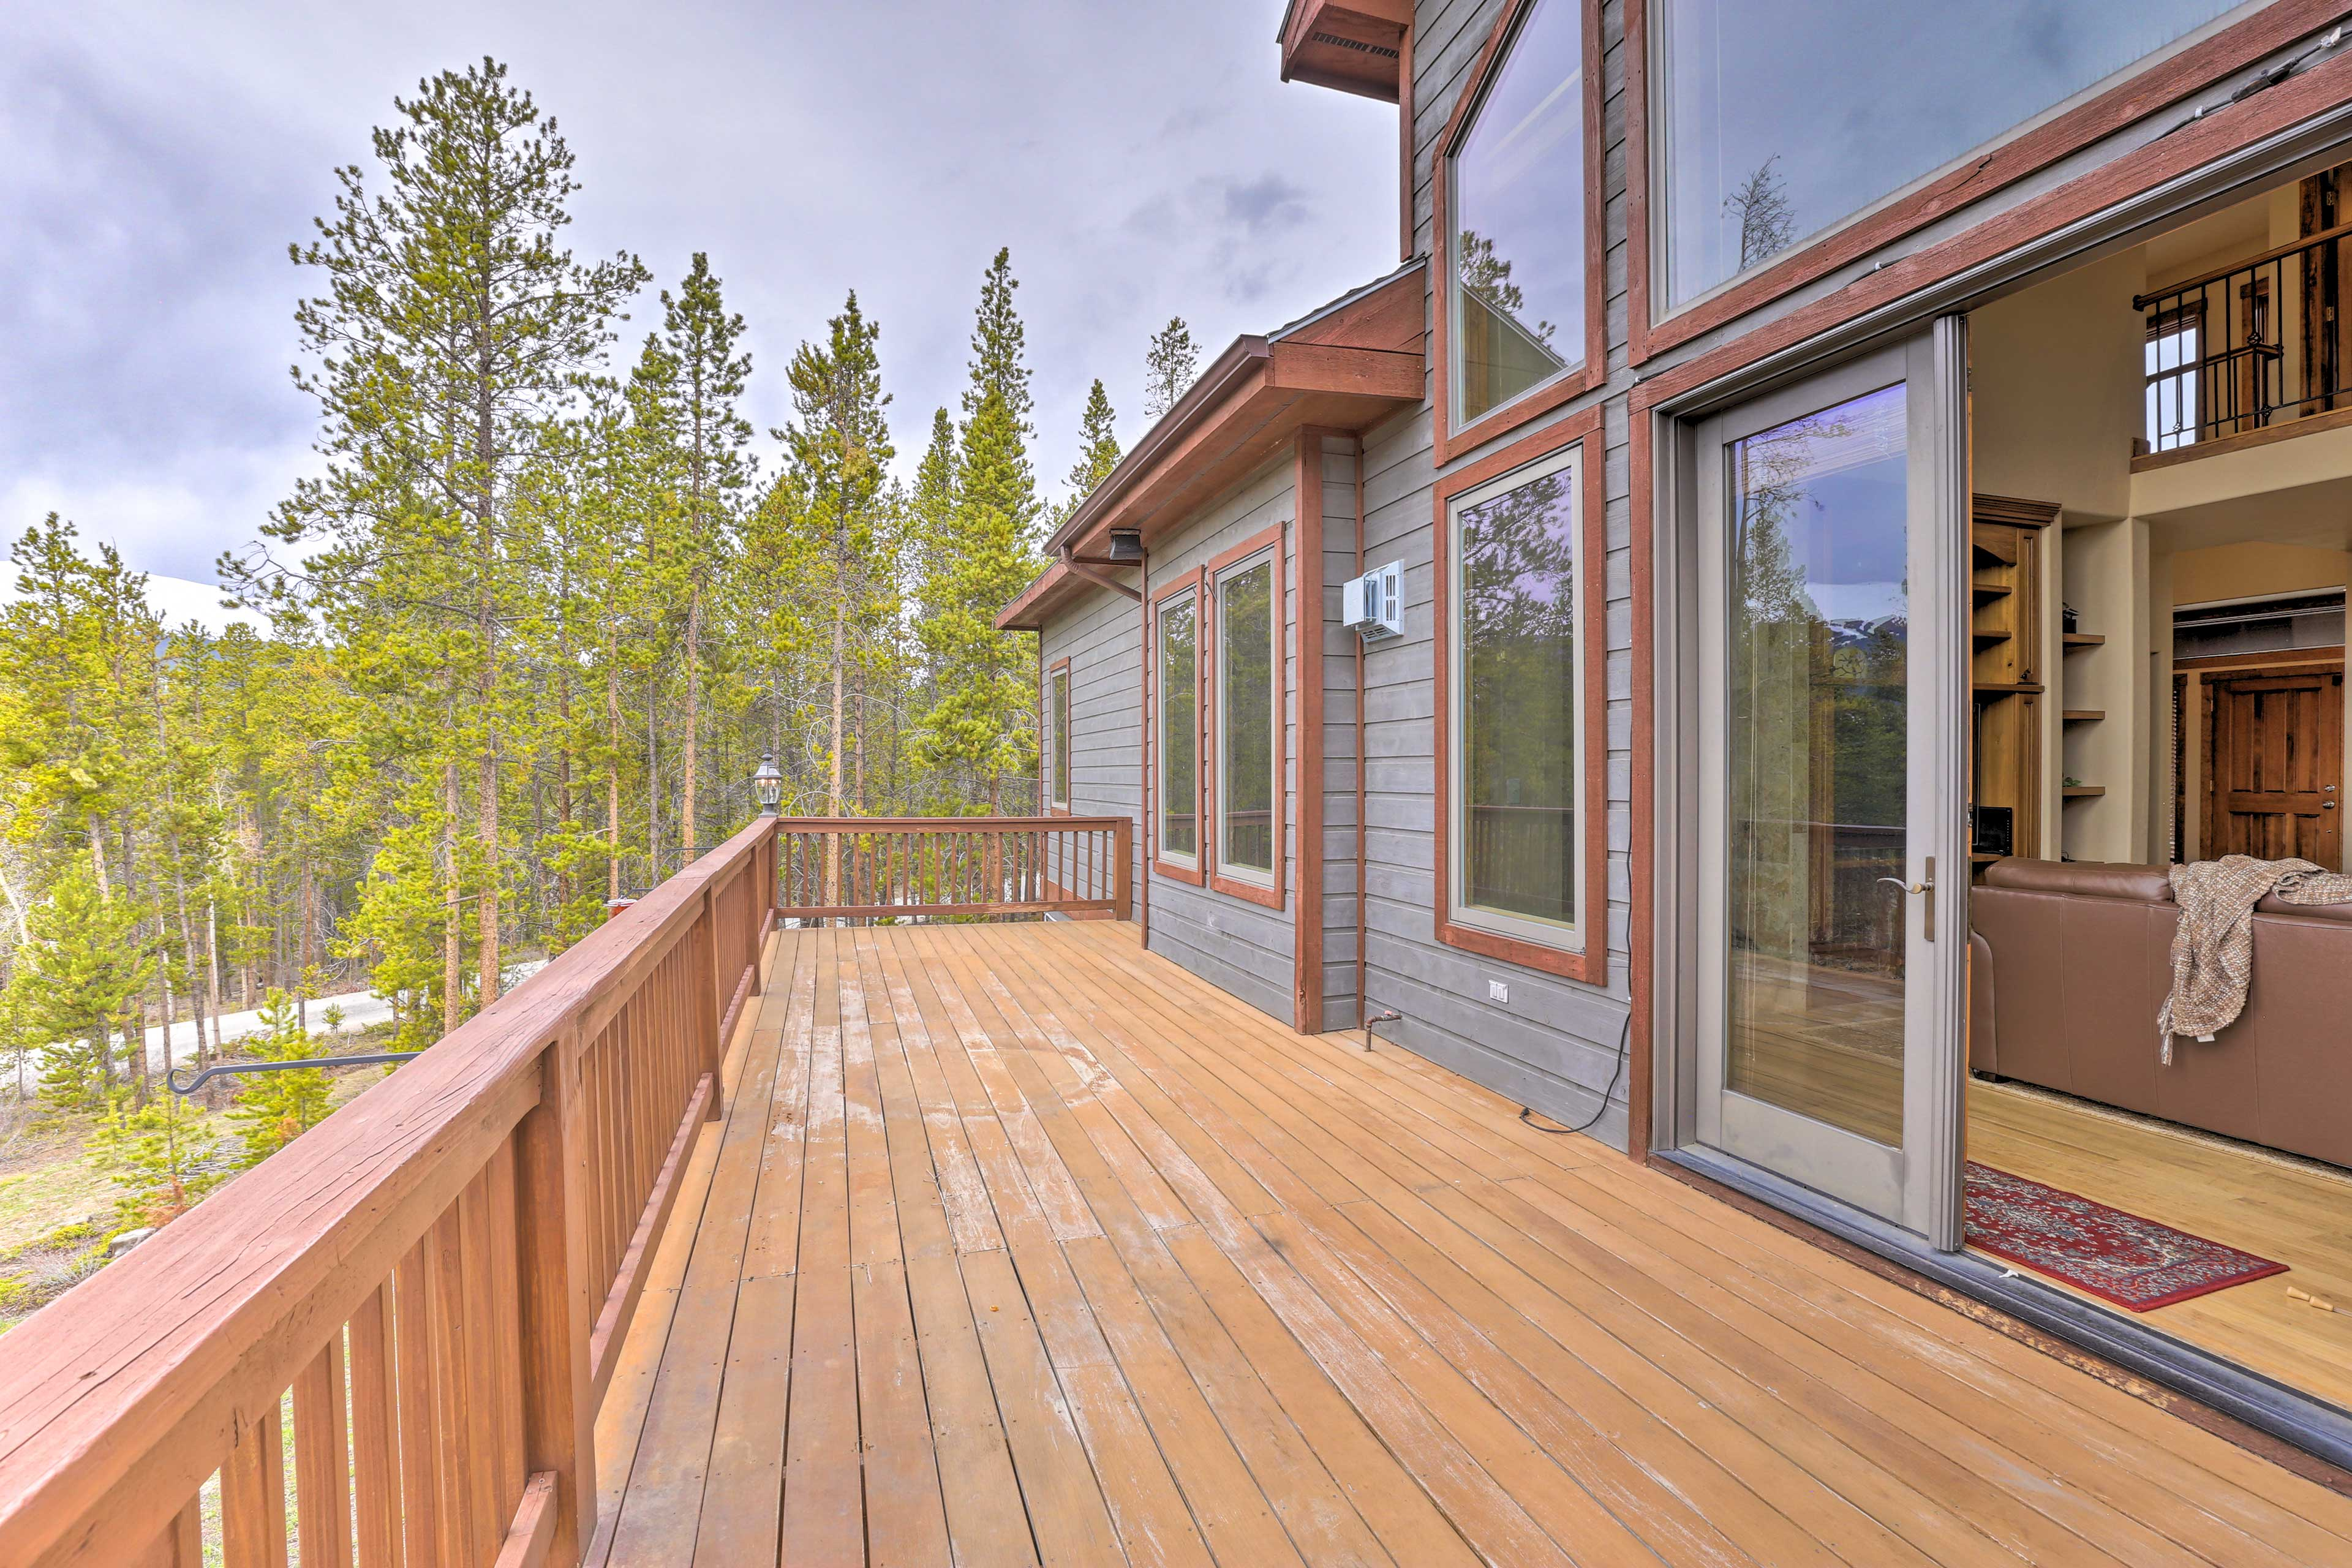 Step out onto the deck to get some fresh mountain air.